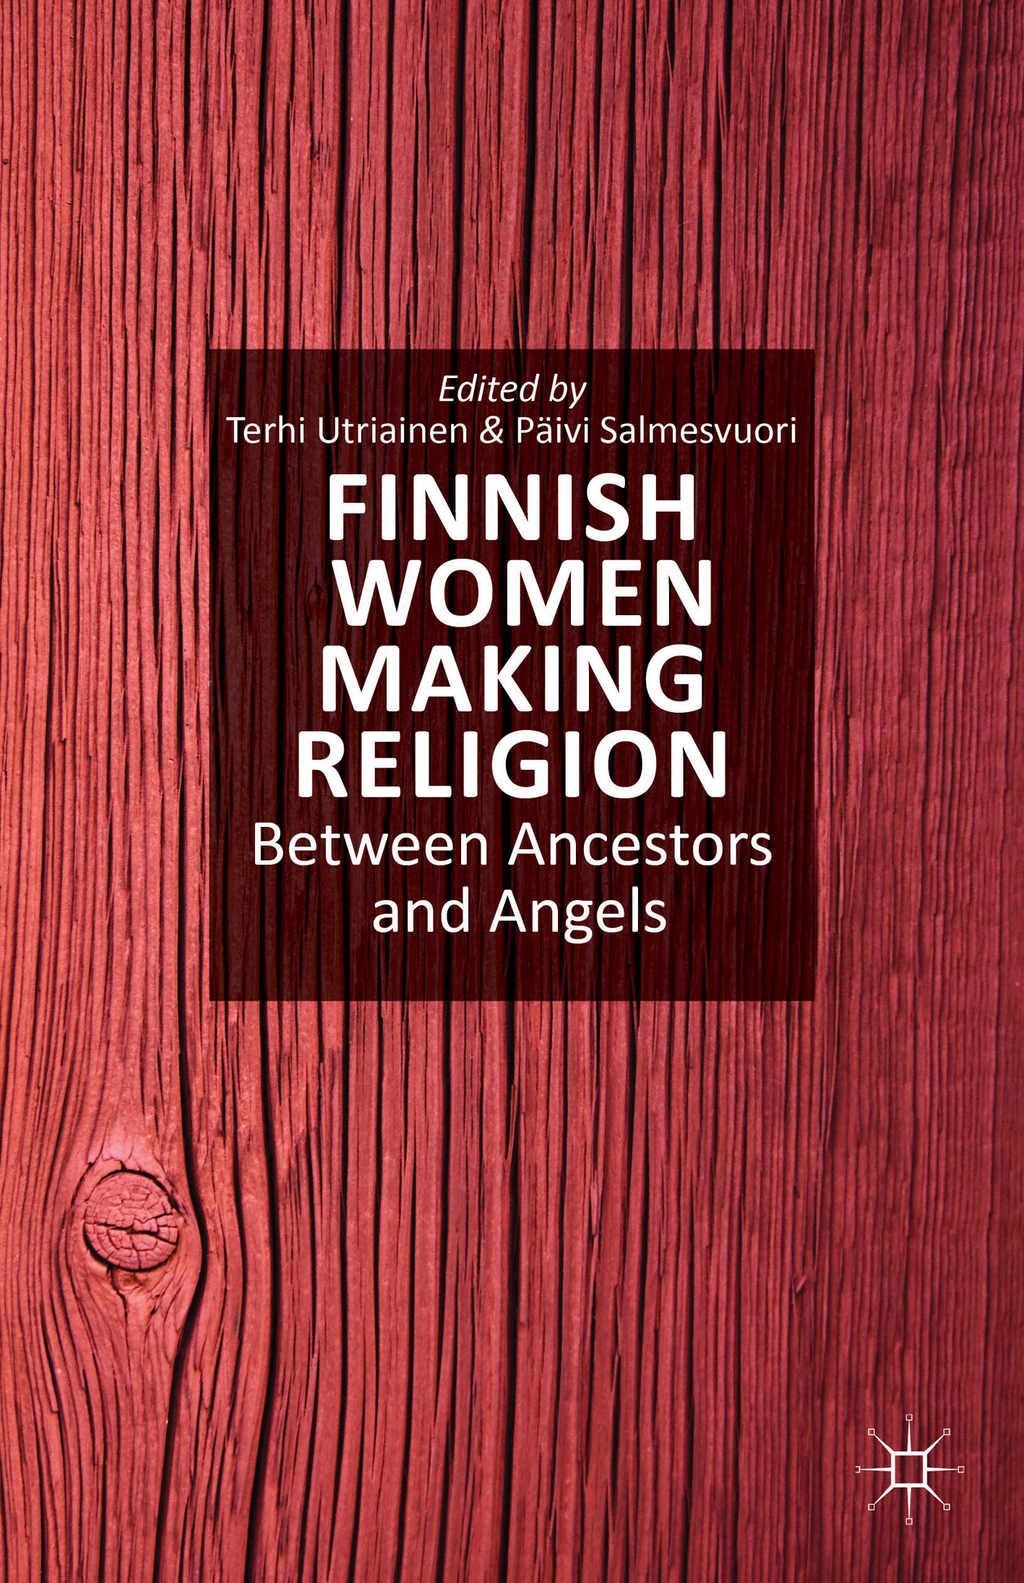 Finnish Women Making Religion Between Ancestors and Angels